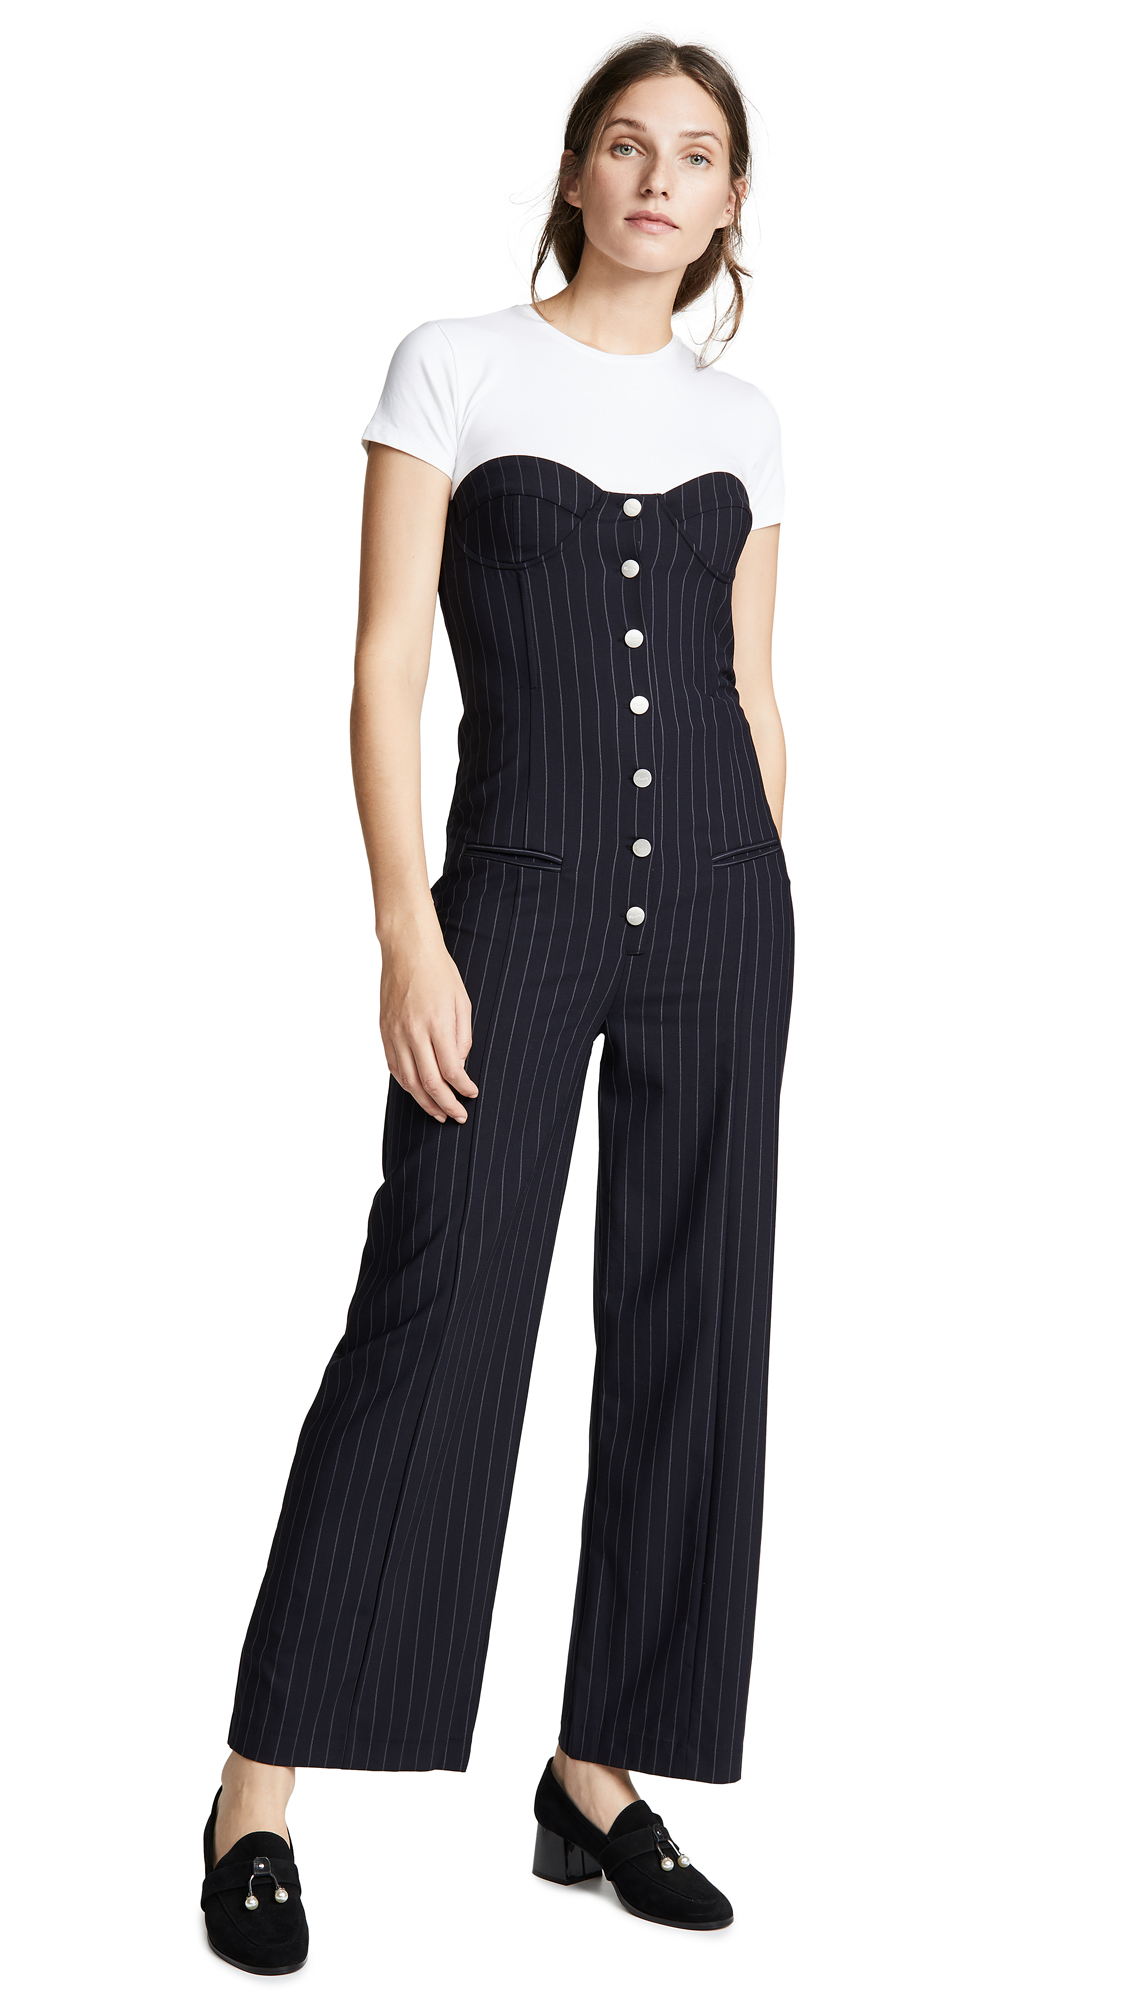 Miaou Piper Pinstripe Bustier Jumpsuit